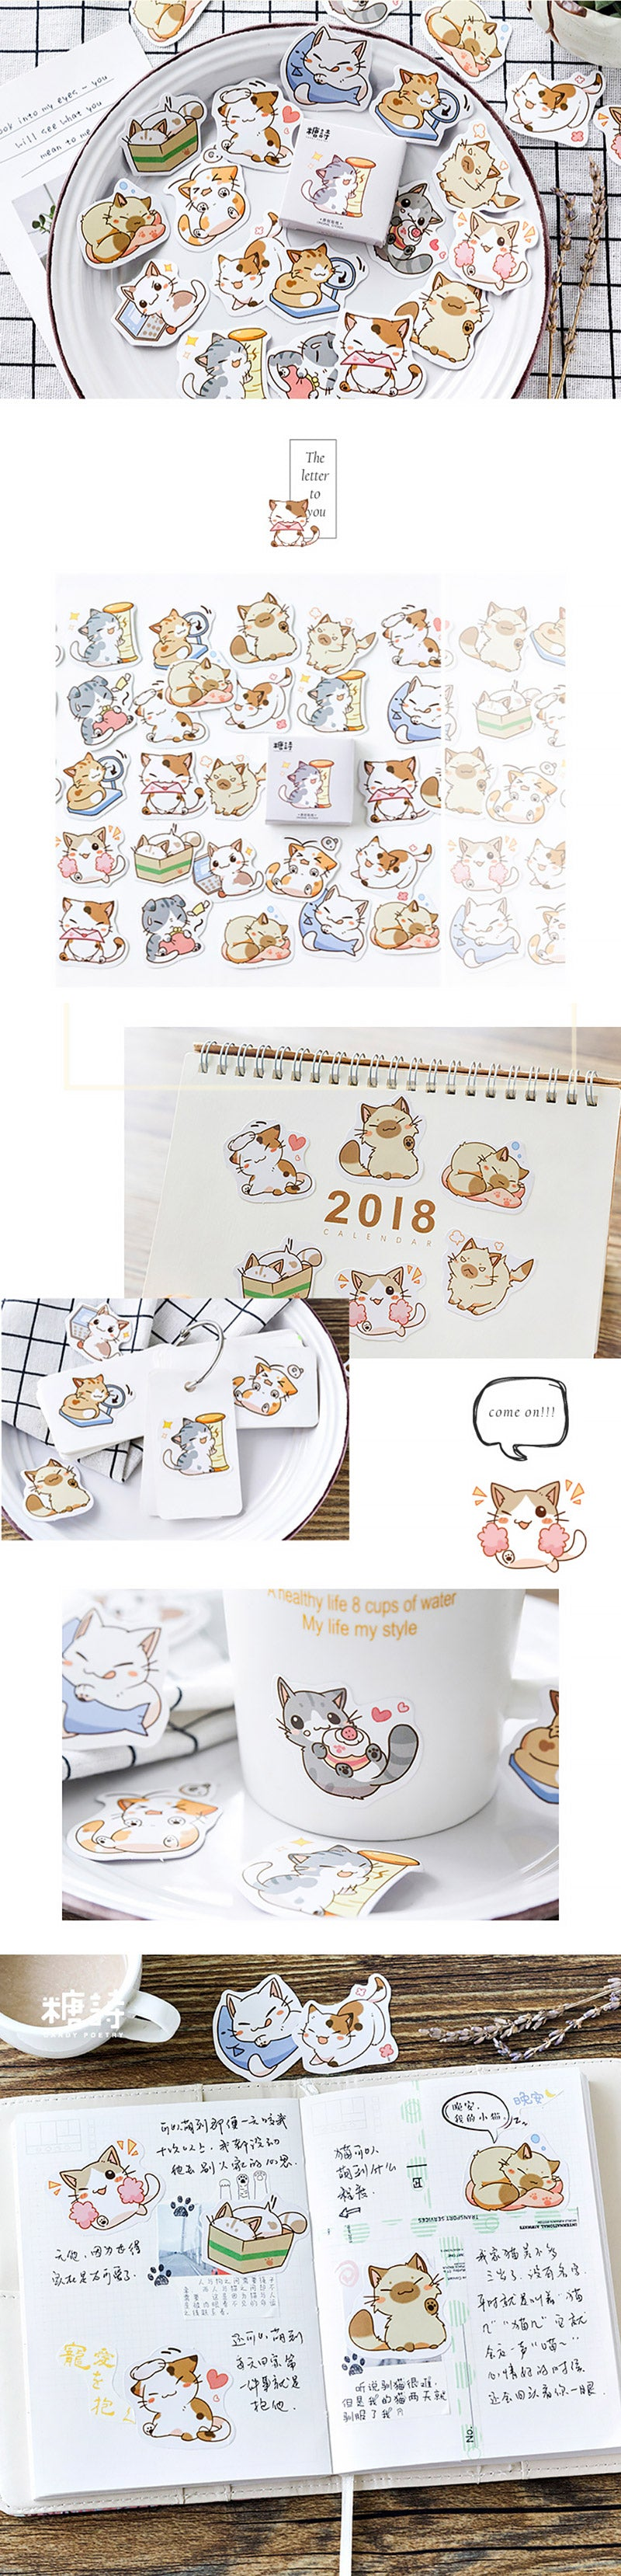 Kawaii Cartoon Cat Daily Life Paper Stickers 45 Pcs - Detail